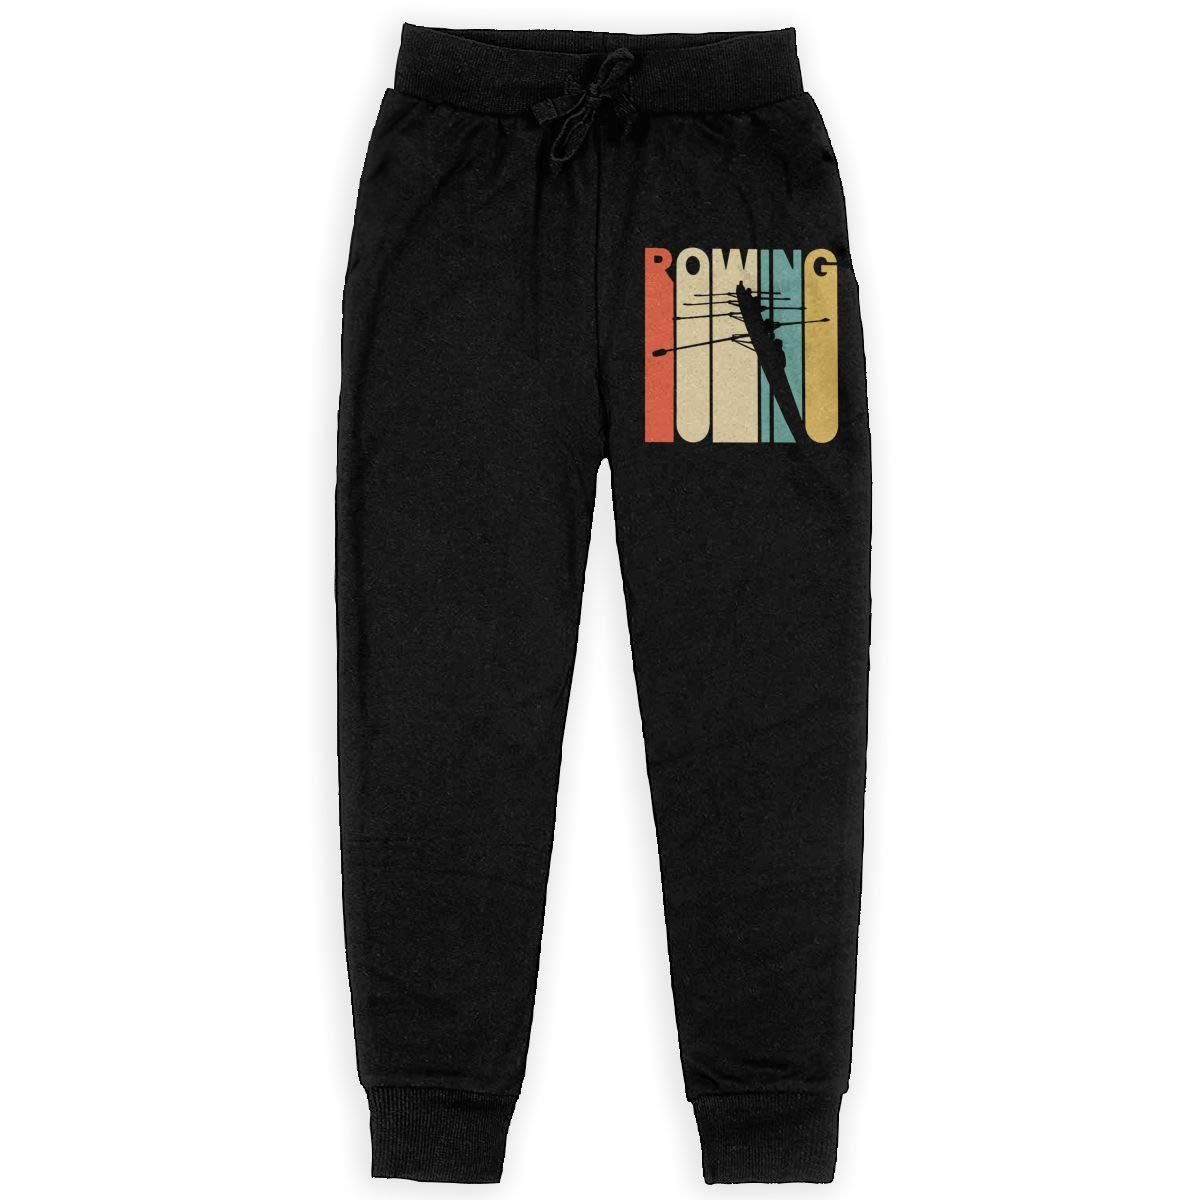 Youth Active Pants for Teen Girls Vintage Style Rowing Silhouette Soft//Cozy Sweatpants